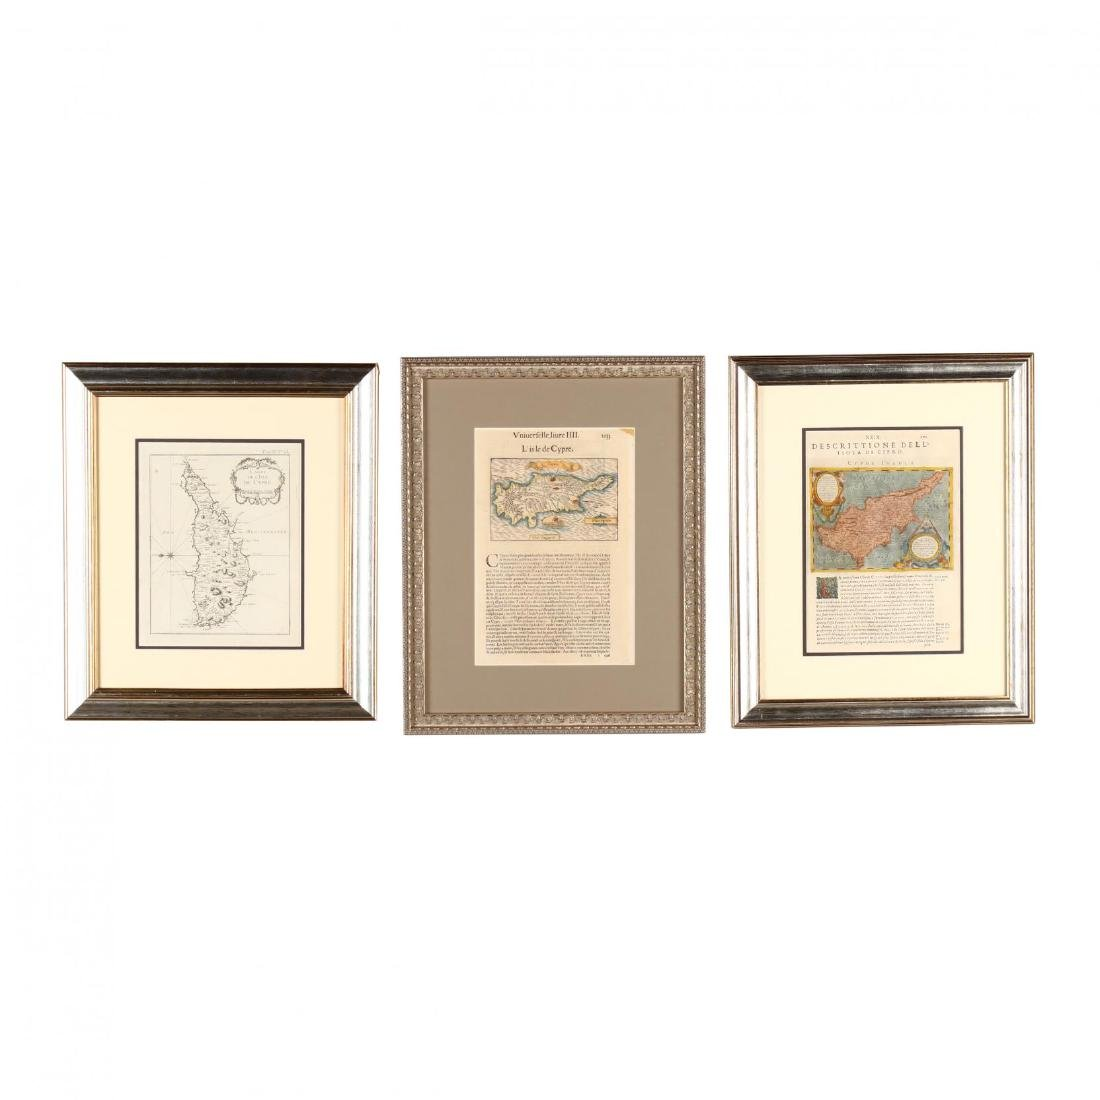 Three Copperplate Maps of Cyprus on Disbound Book